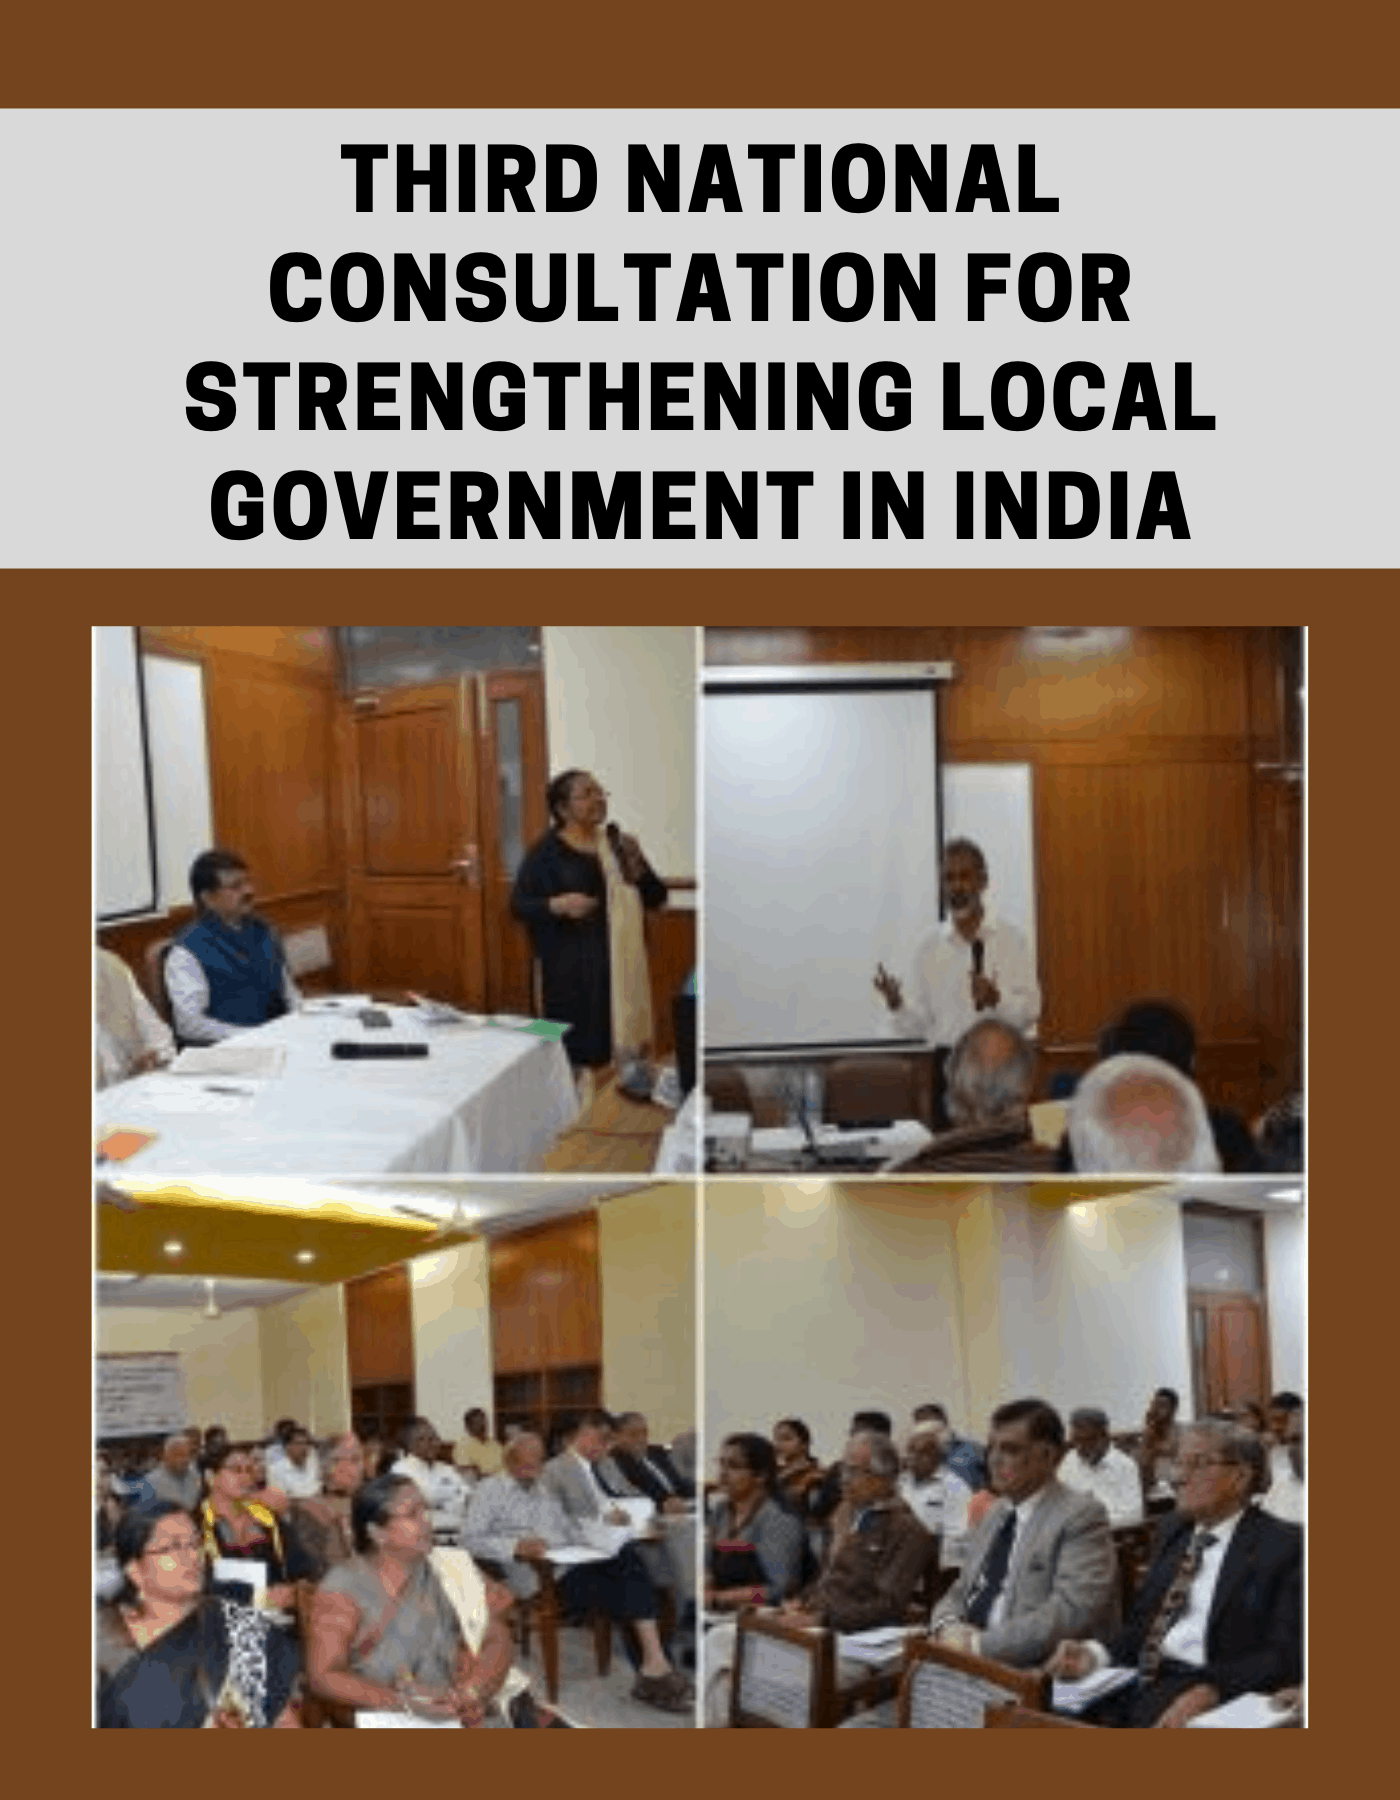 Third National Consultation for Strengthening Local Government in India